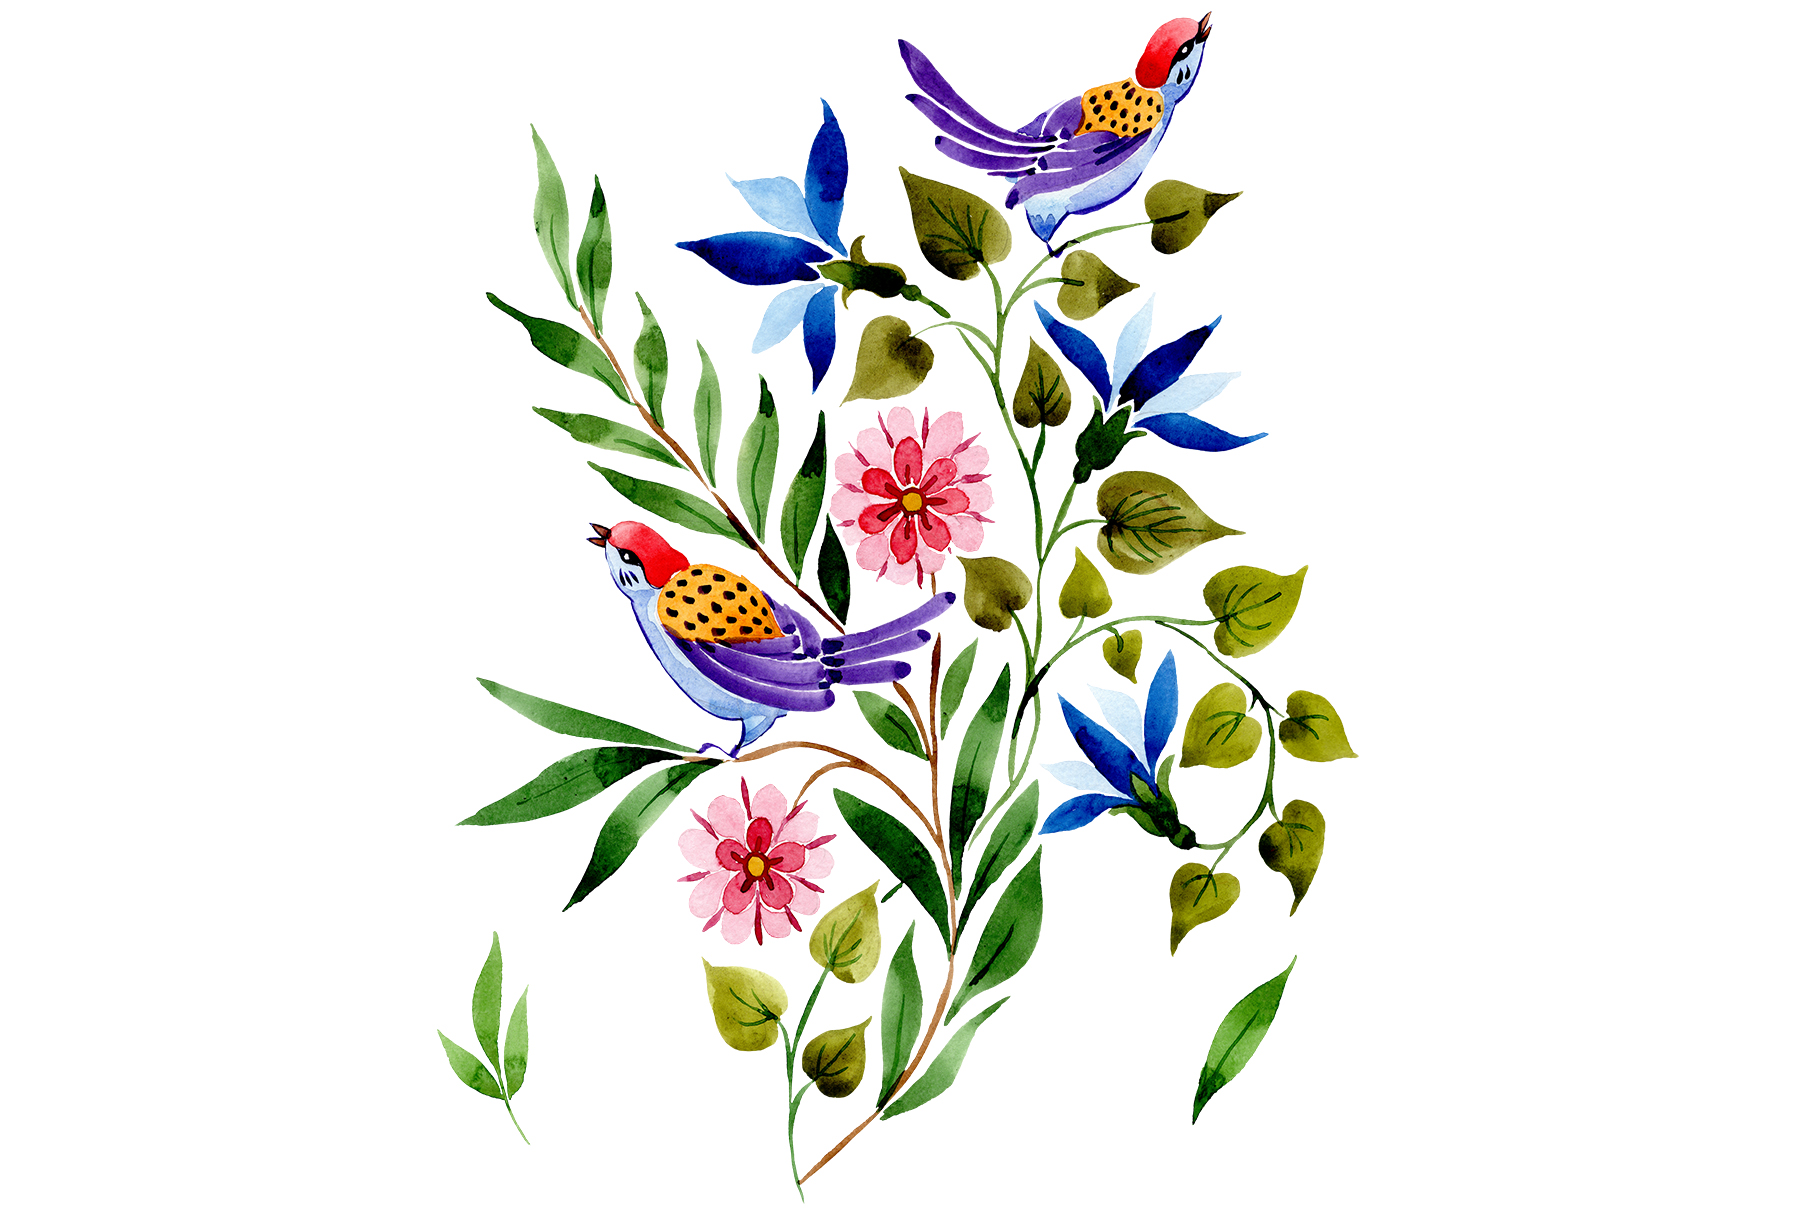 Download Free Ornament With Birds Watercolor Set Graphic By Mystocks for Cricut Explore, Silhouette and other cutting machines.